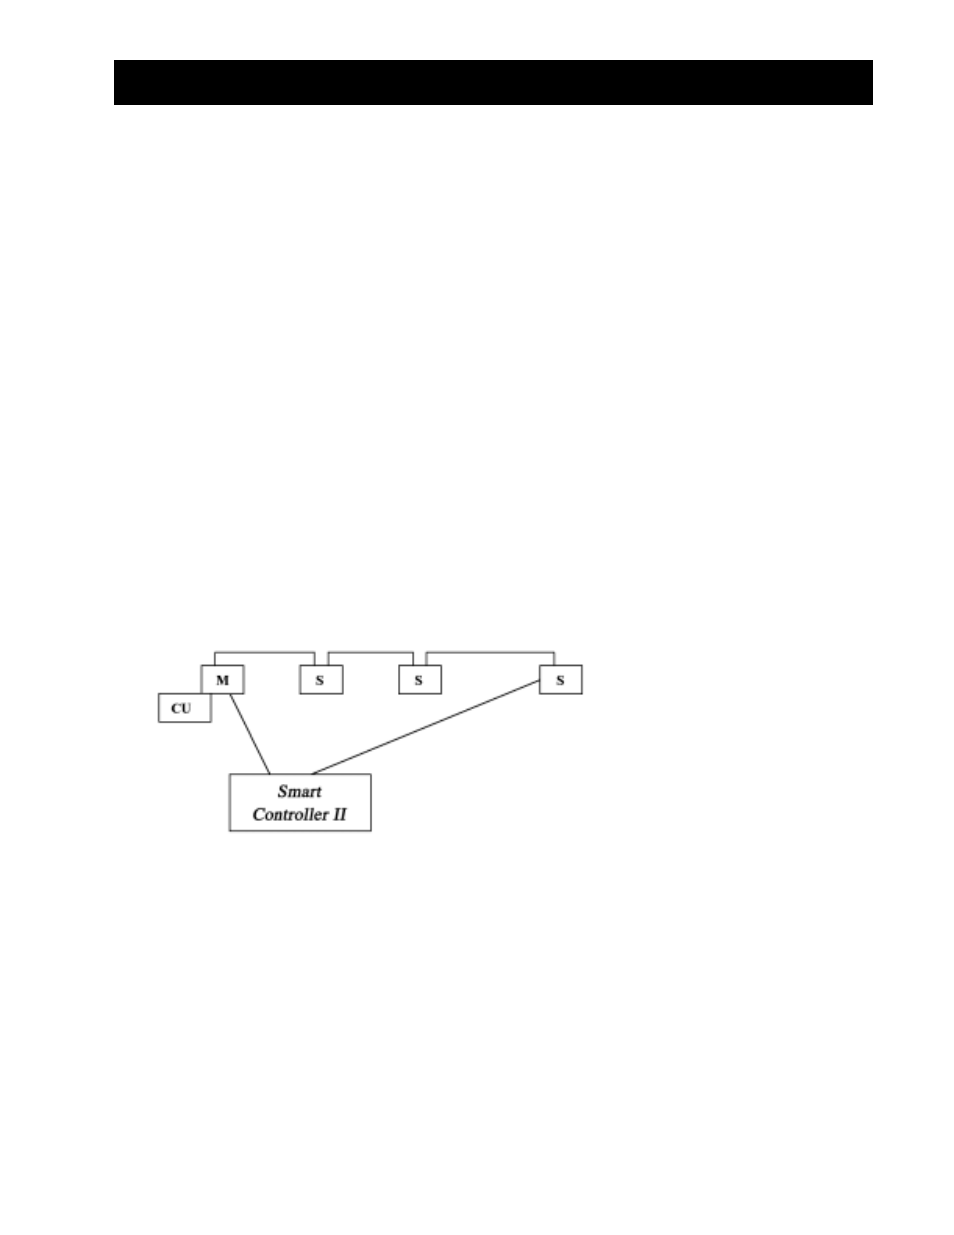 hight resolution of wiring heatcraft refrigeration products beacon ii smart controller h im 80c user manual page 5 24